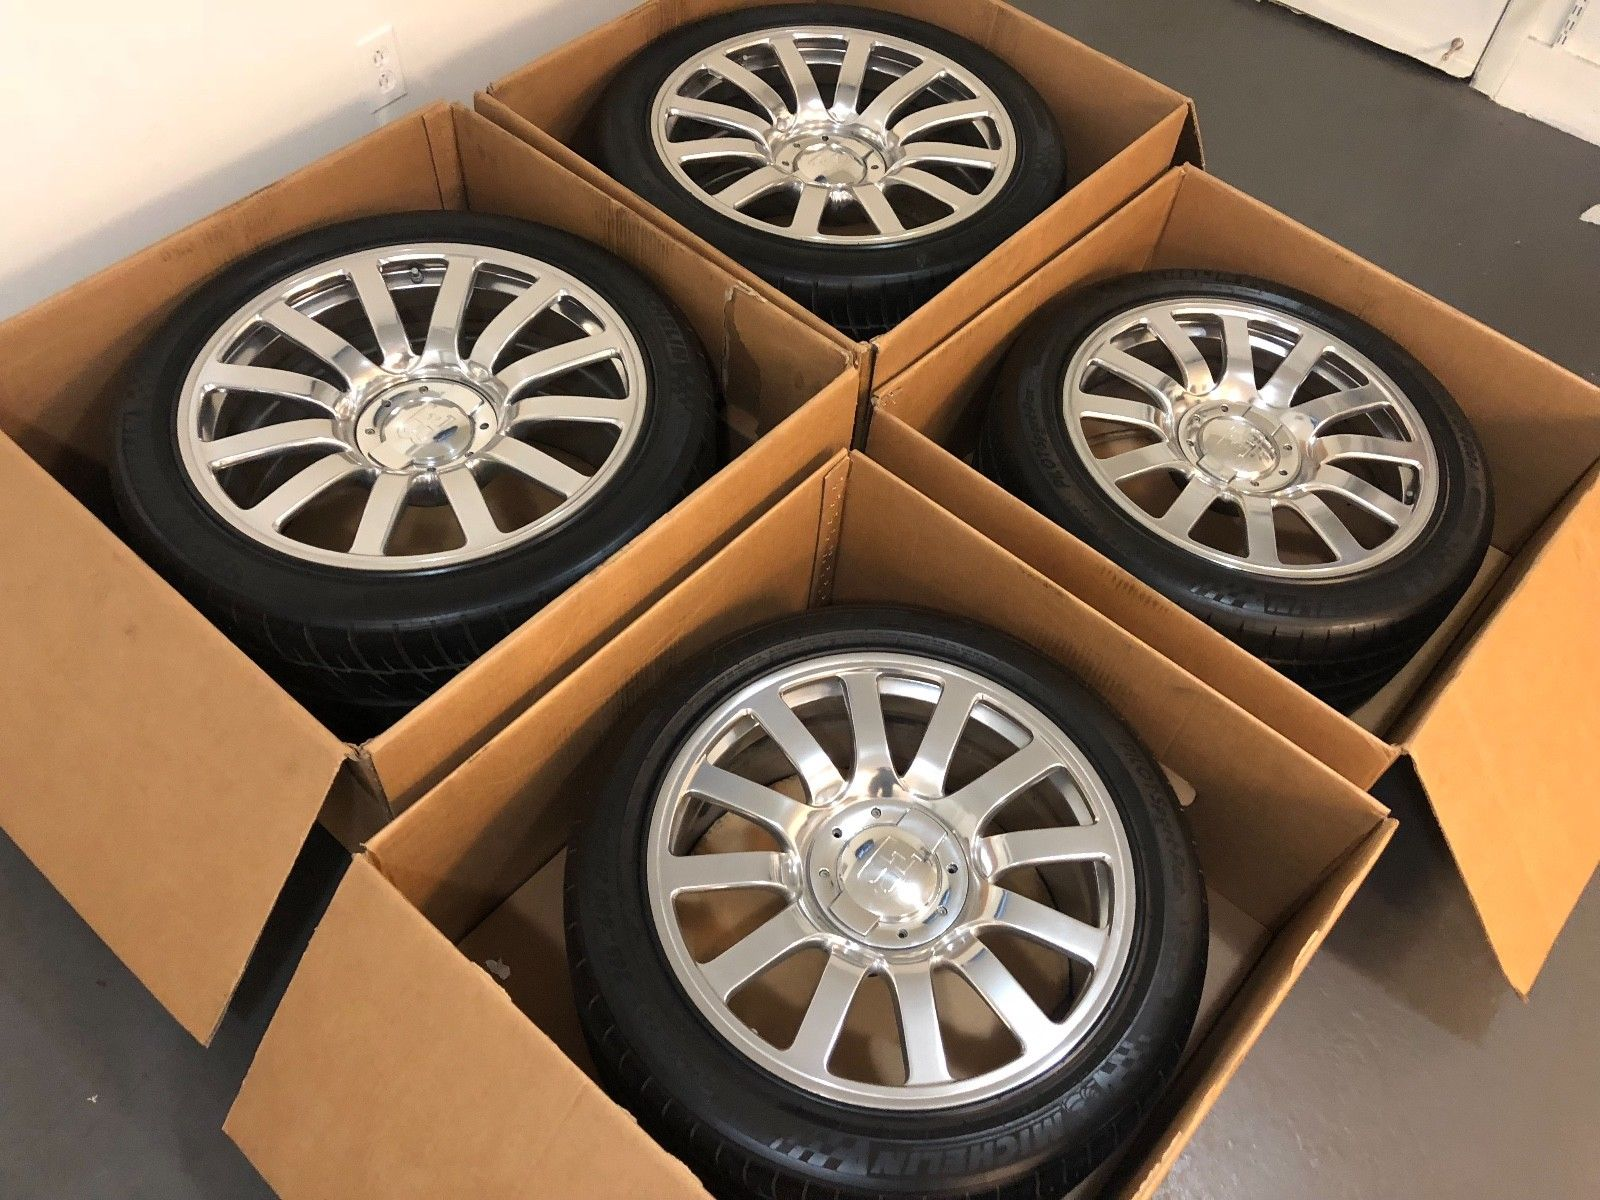 Bugatti Veyron Wheels and Tires for sale (10)